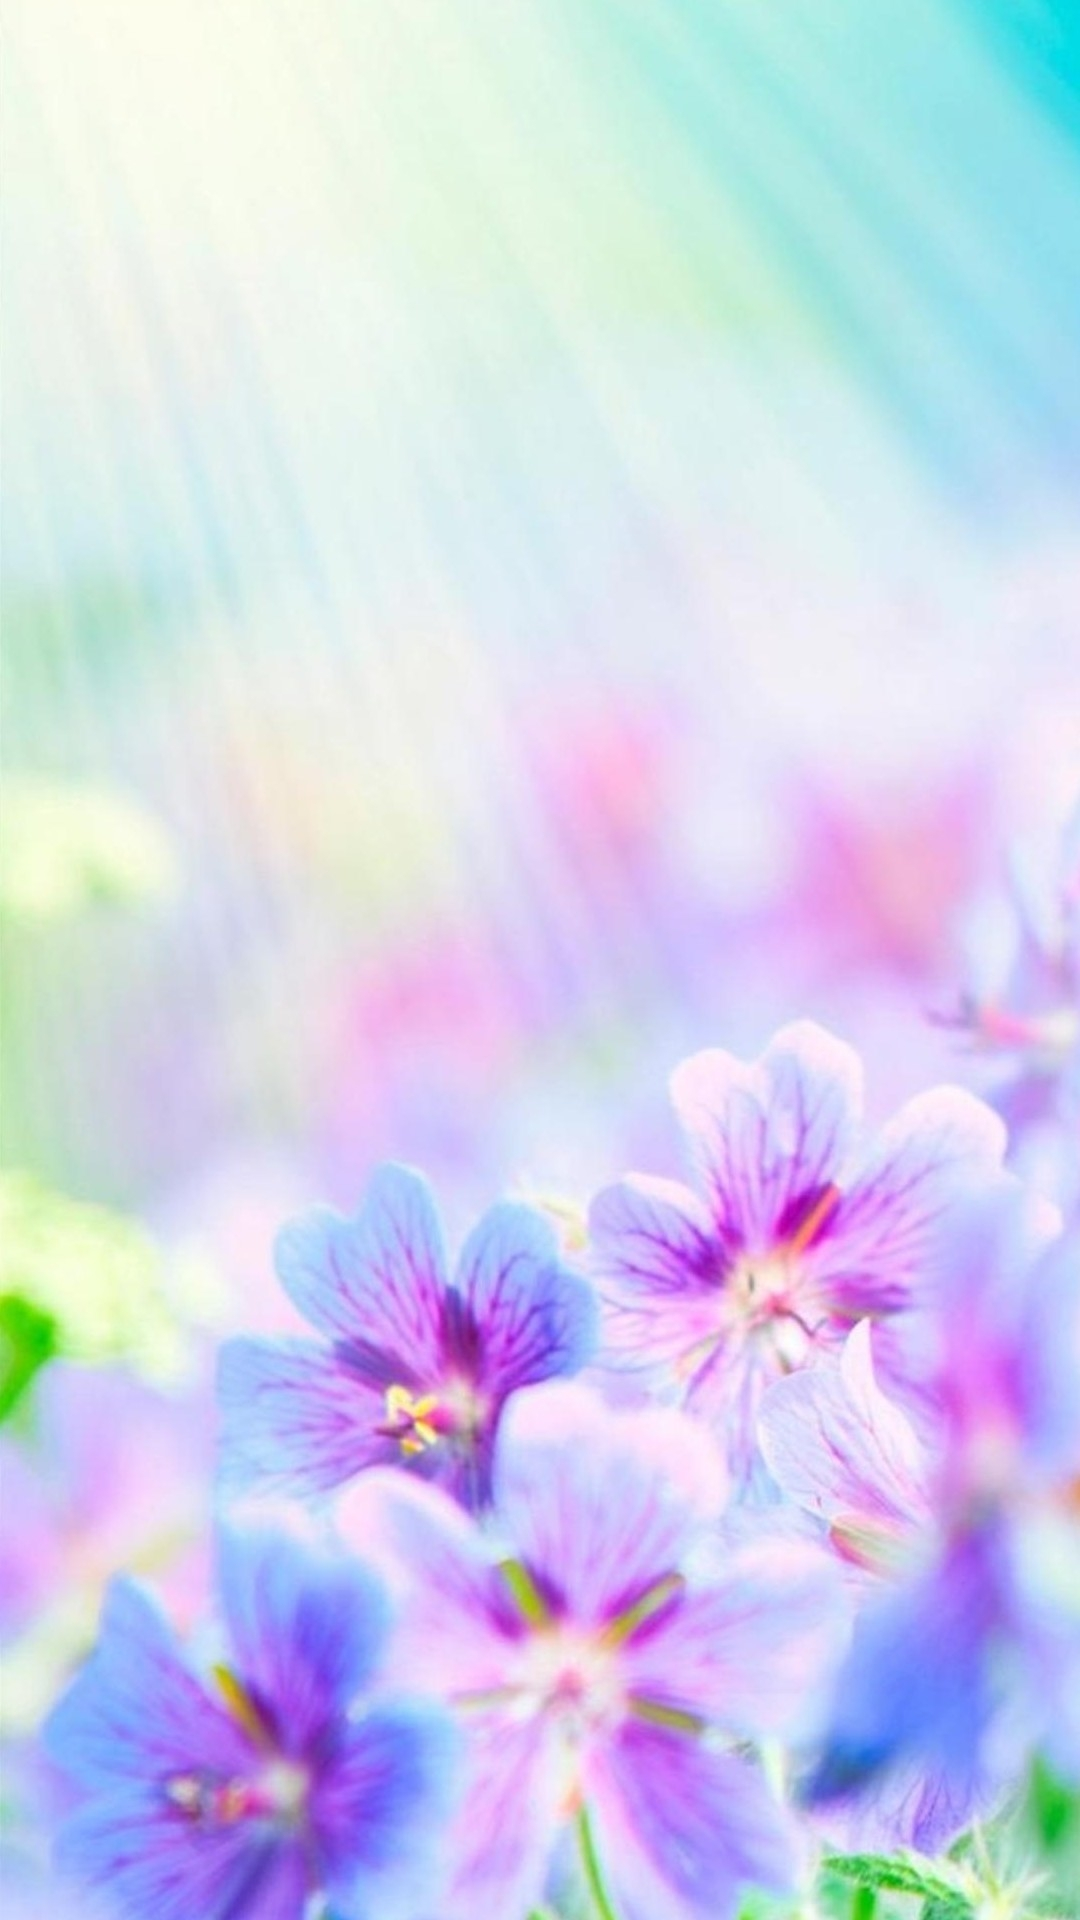 Flowers wallpaper flowers phone wallpapers flower android - Flower wallpaper for your phone ...